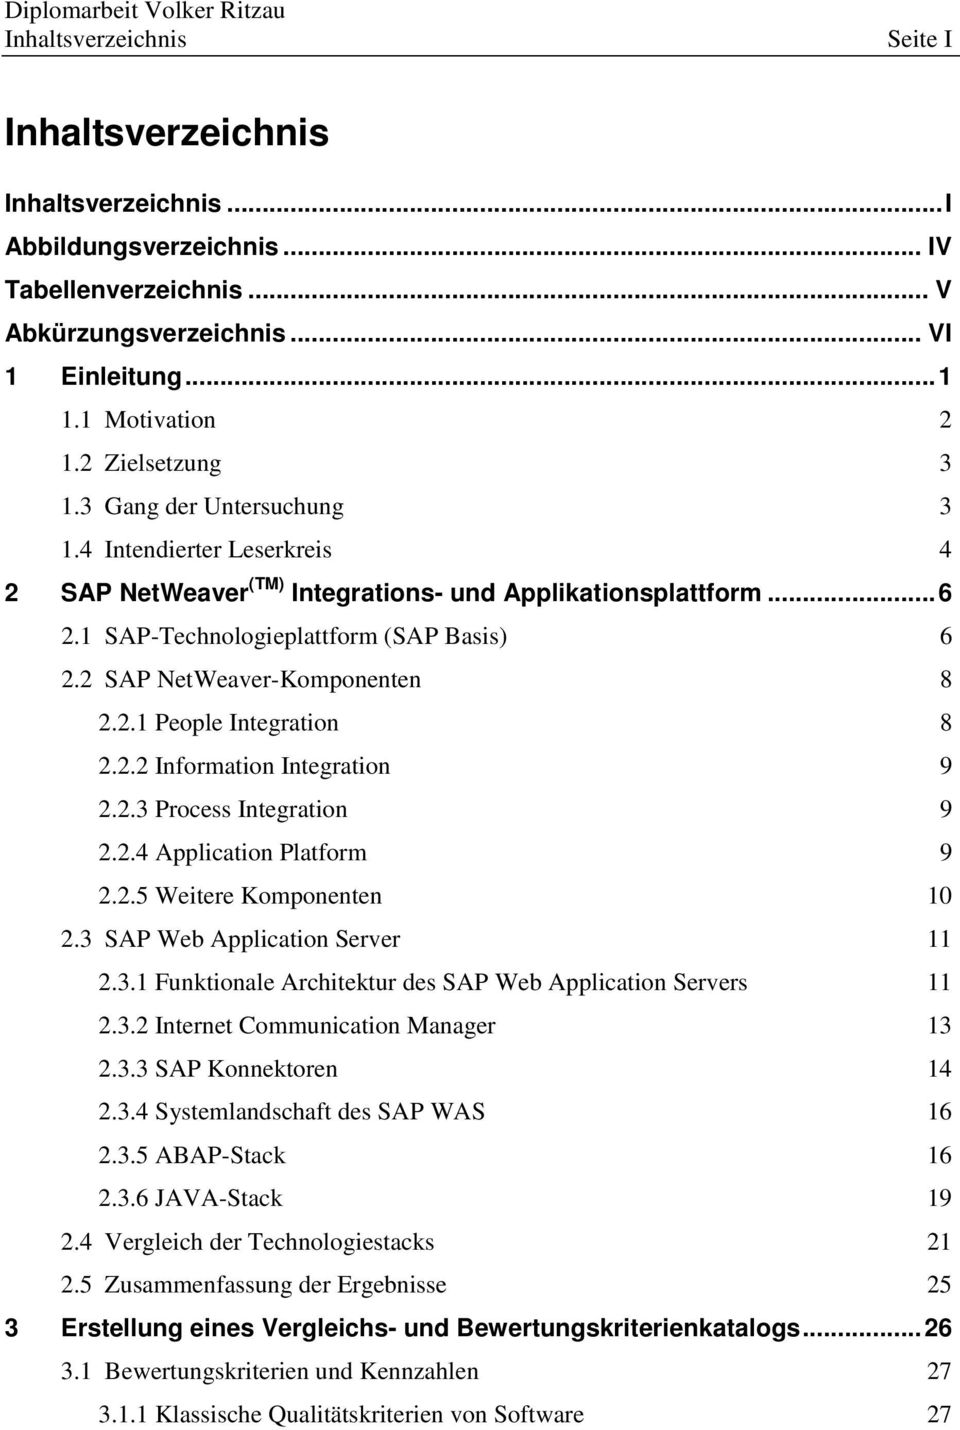 2 SAP NetWeaver-Komponenten 8 2.2.1 People Integration 8 2.2.2 Information Integration 9 2.2.3 Process Integration 9 2.2.4 Application Platform 9 2.2.5 Weitere Komponenten 10 2.